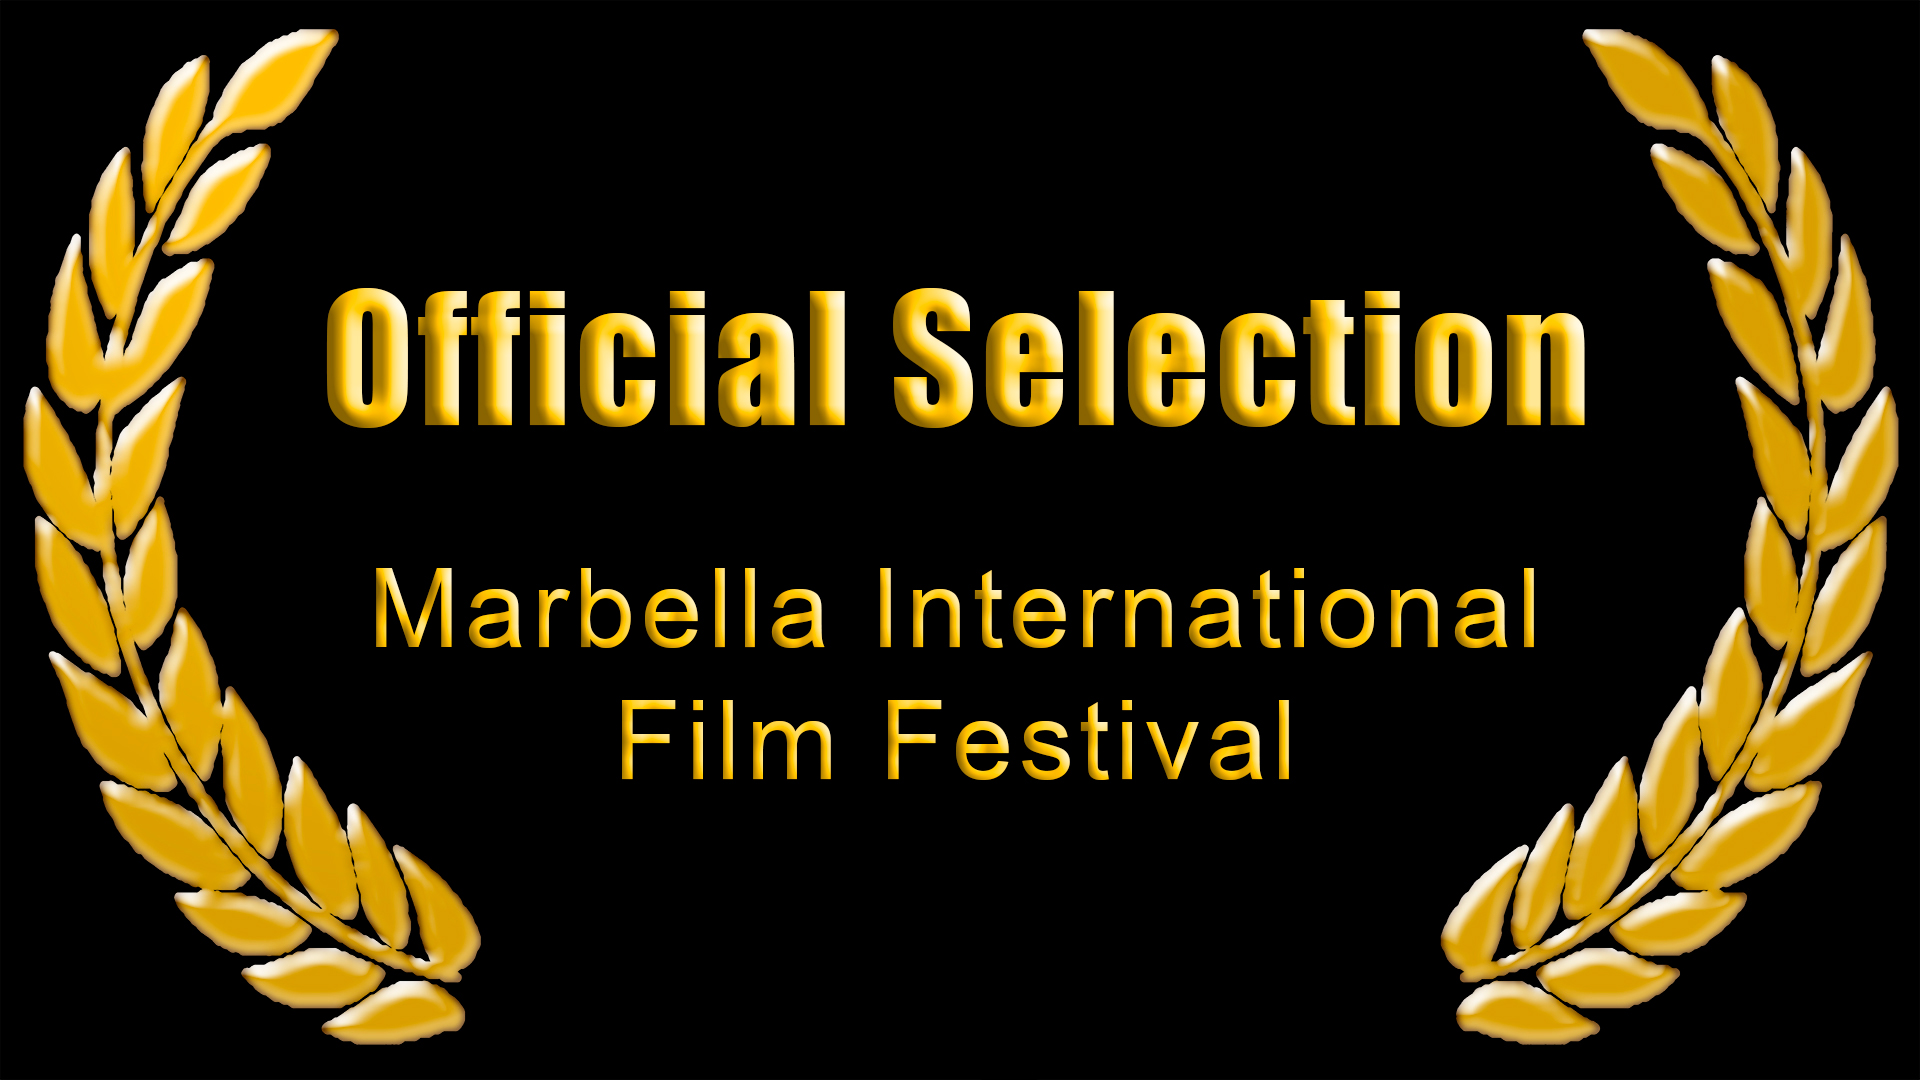 Marbella International Film Festival, 2012